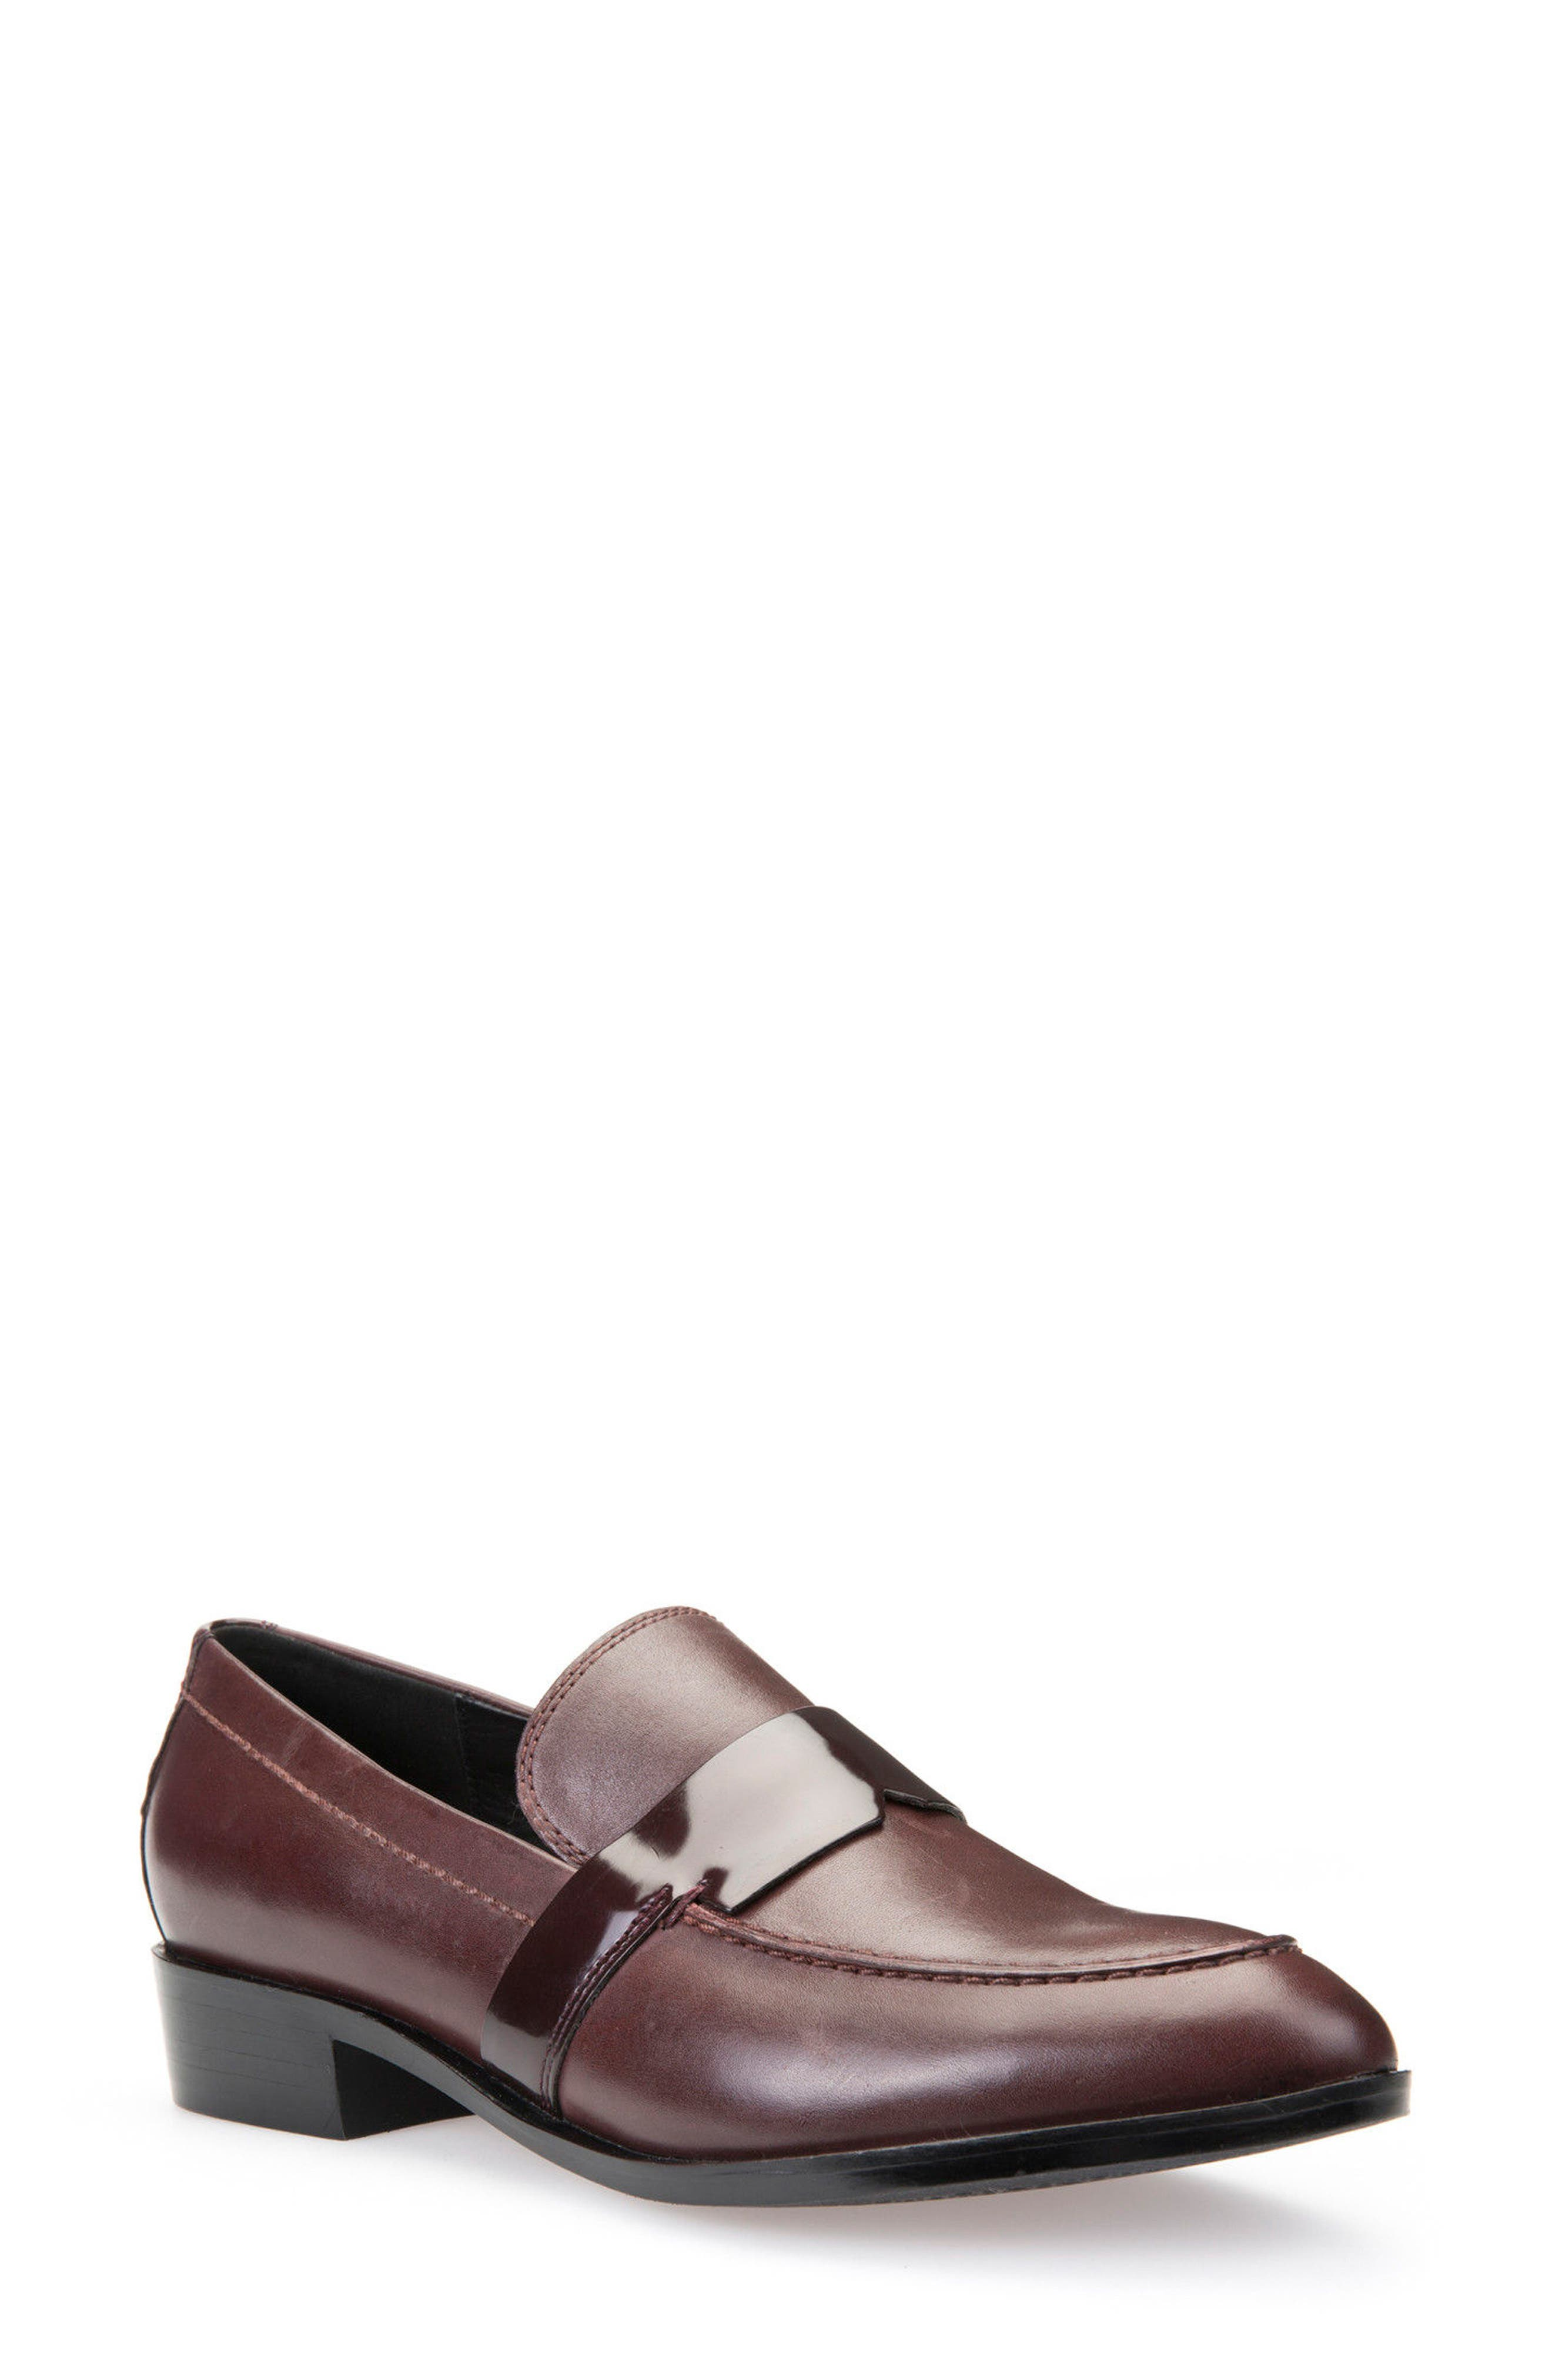 Main Image - Geox Lover Loafer (Women)